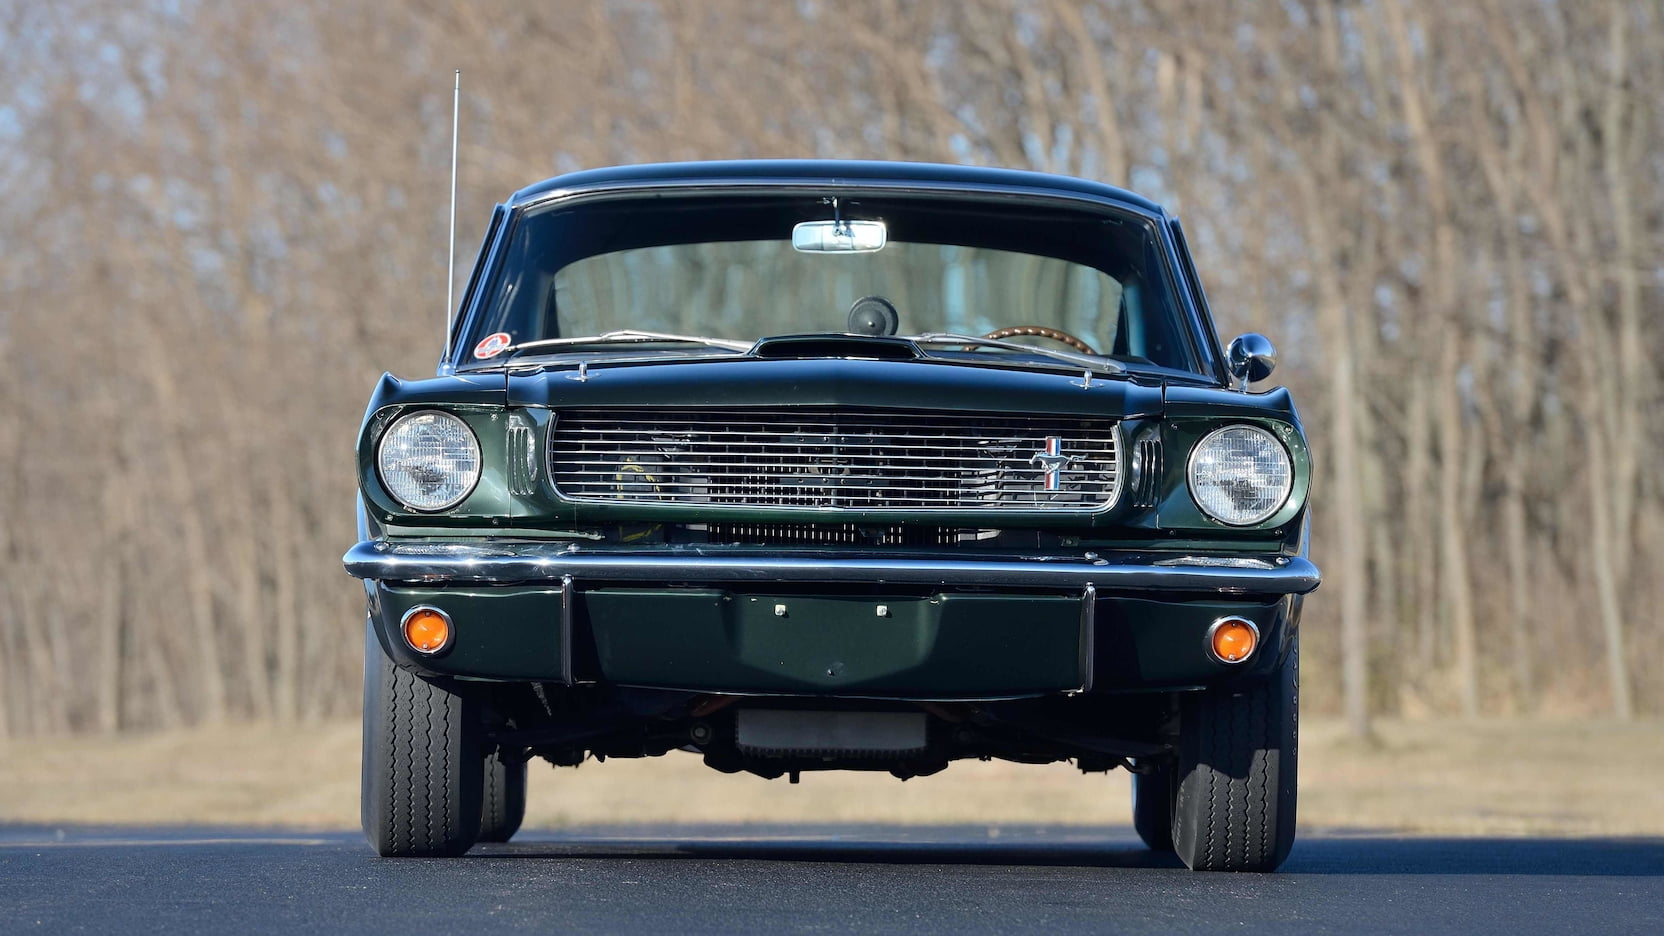 1966 Shelby GT350 front view